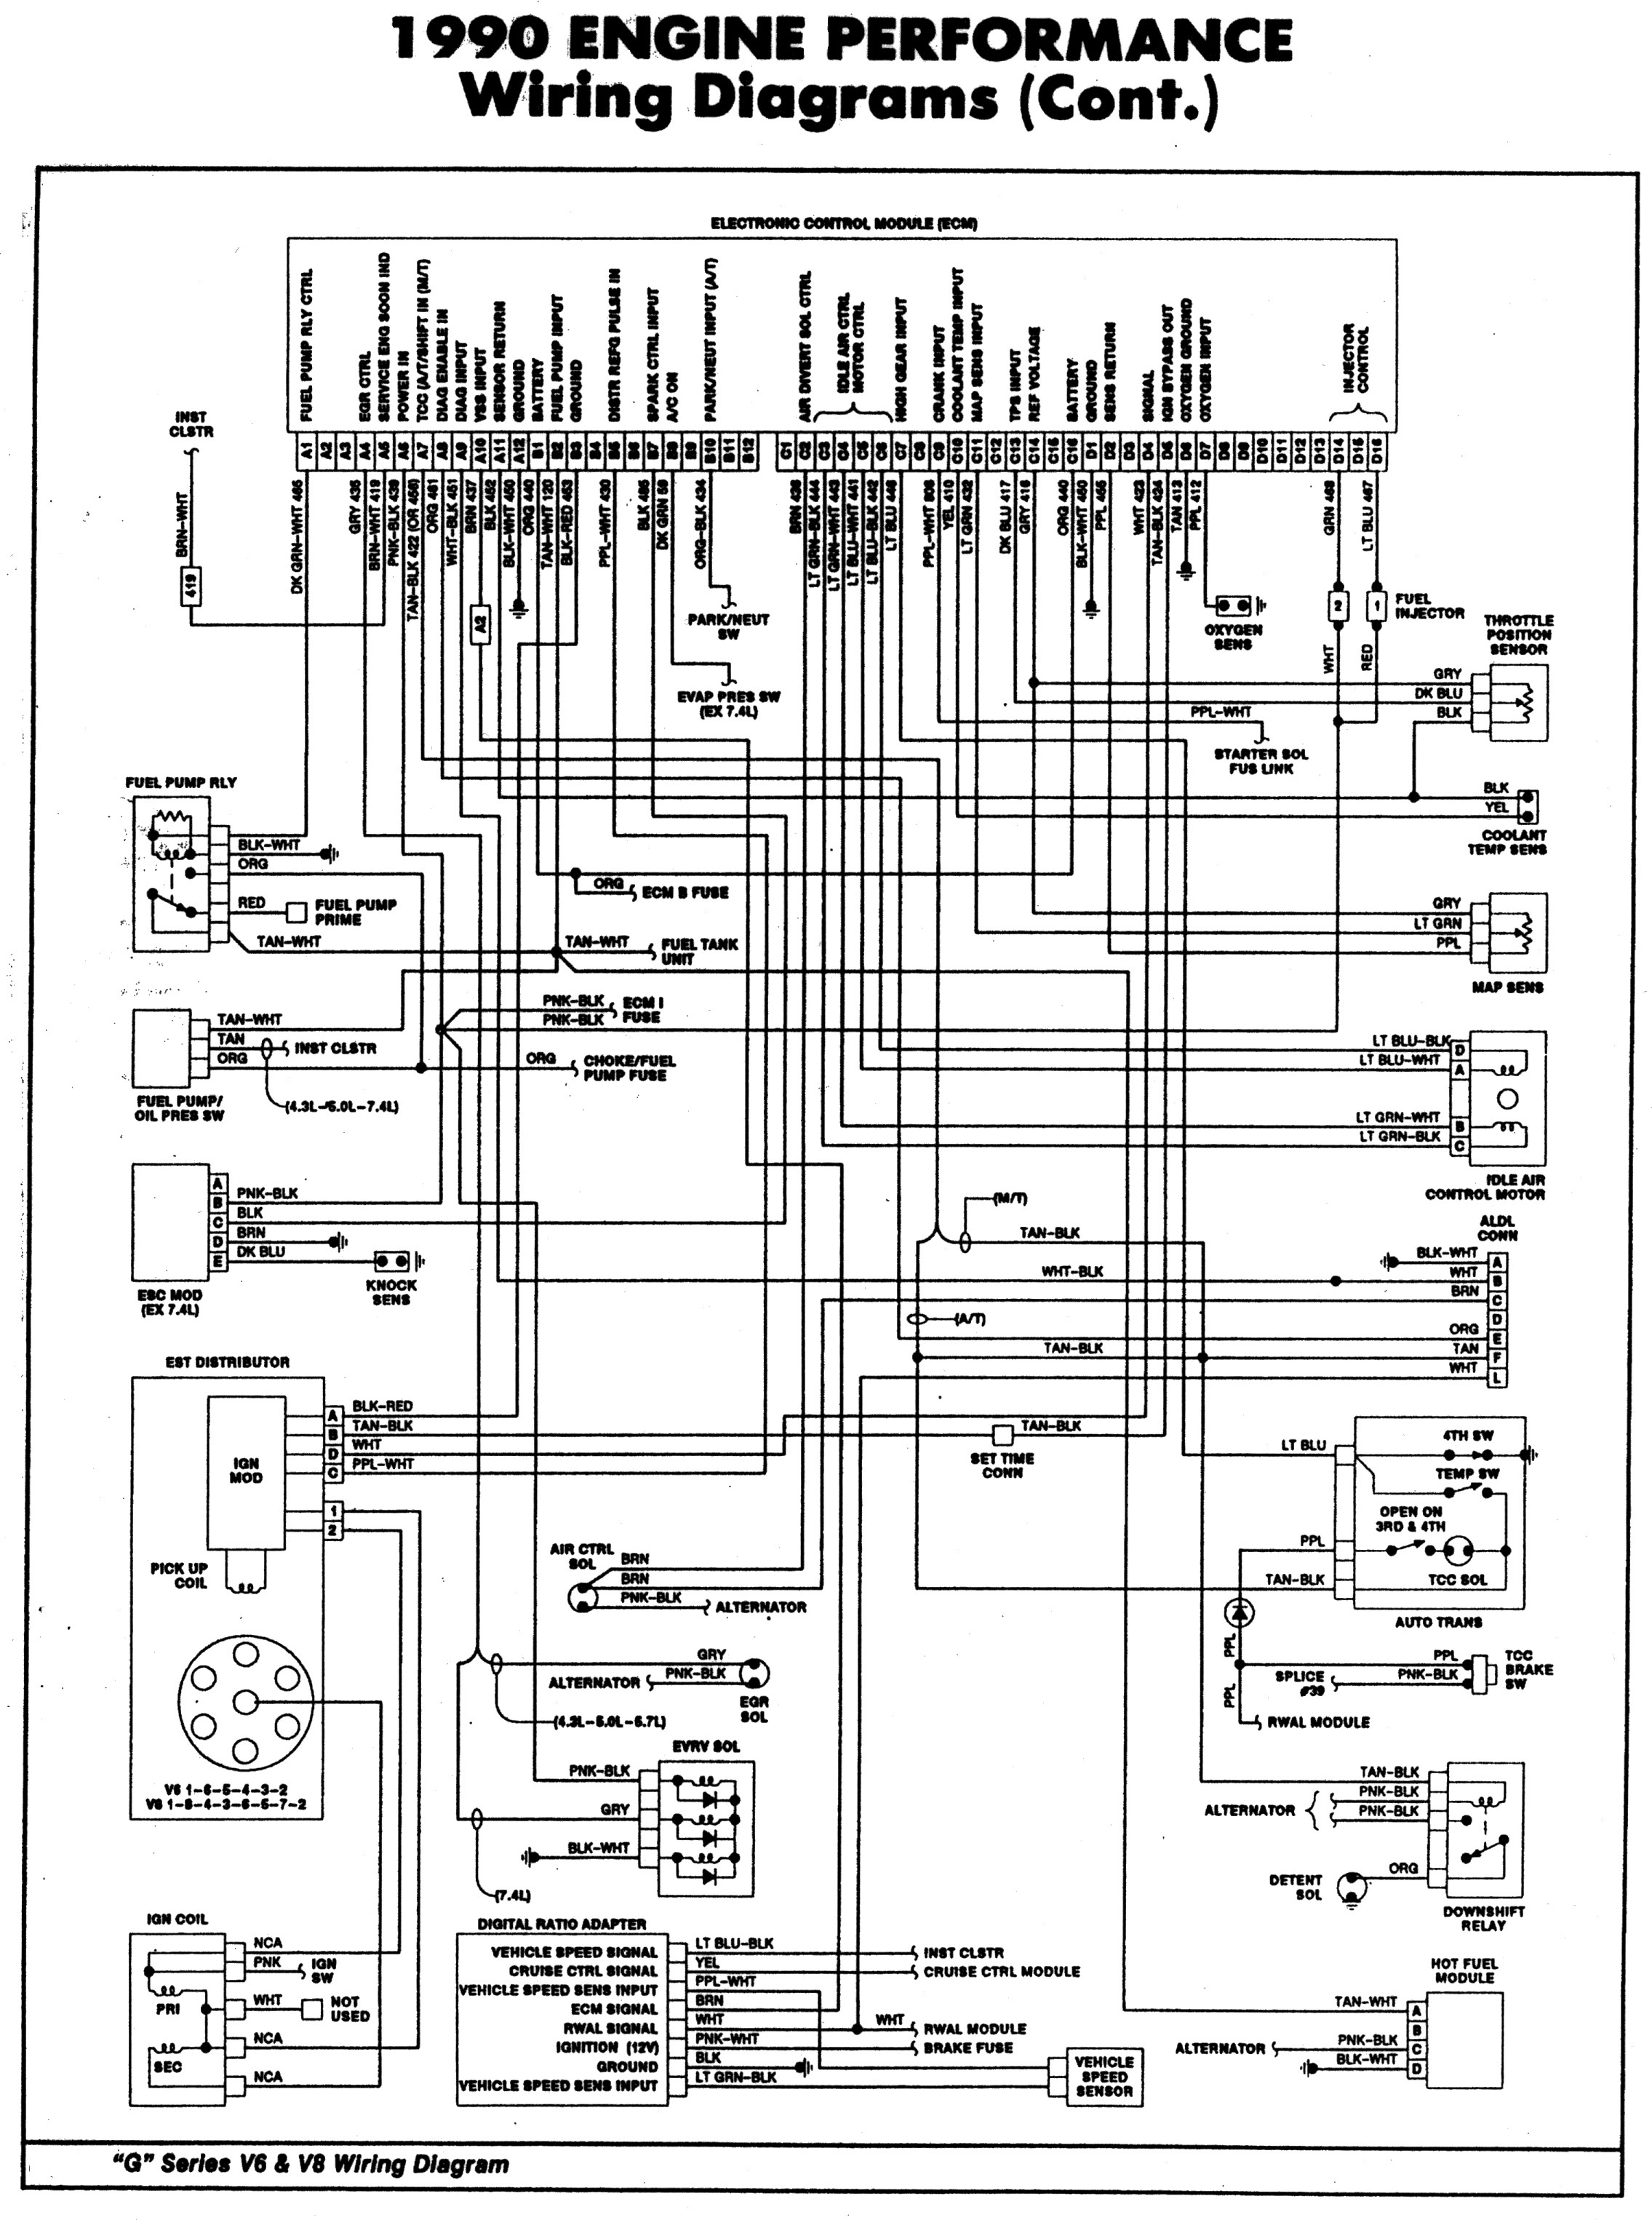 hight resolution of 1988 chevy k1500 wiring diagram schema wiring diagram 1988 chevy k1500 tail light wiring diagram 1988 chevy k1500 wiring diagram